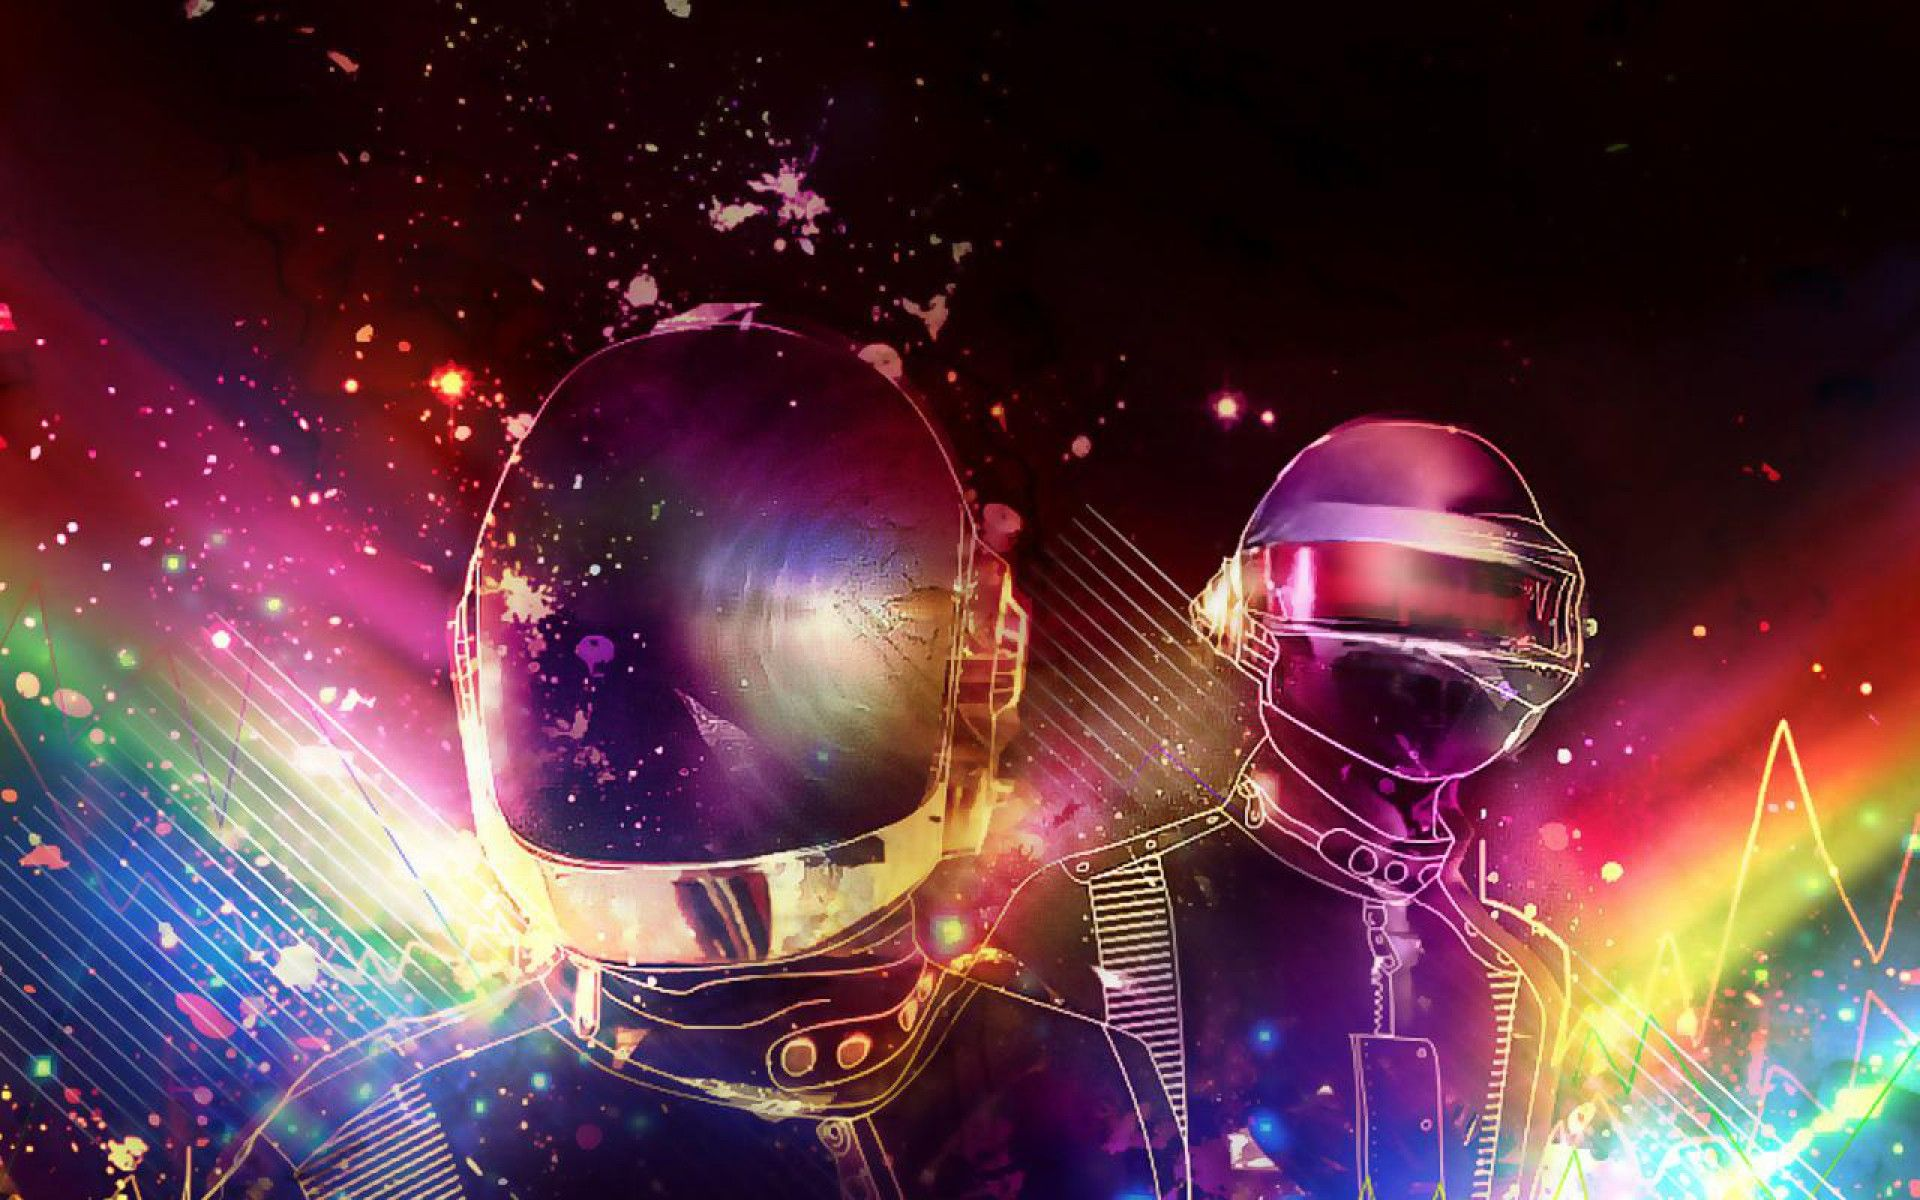 Daft Punk Wallpaper 1080p 1920x1200